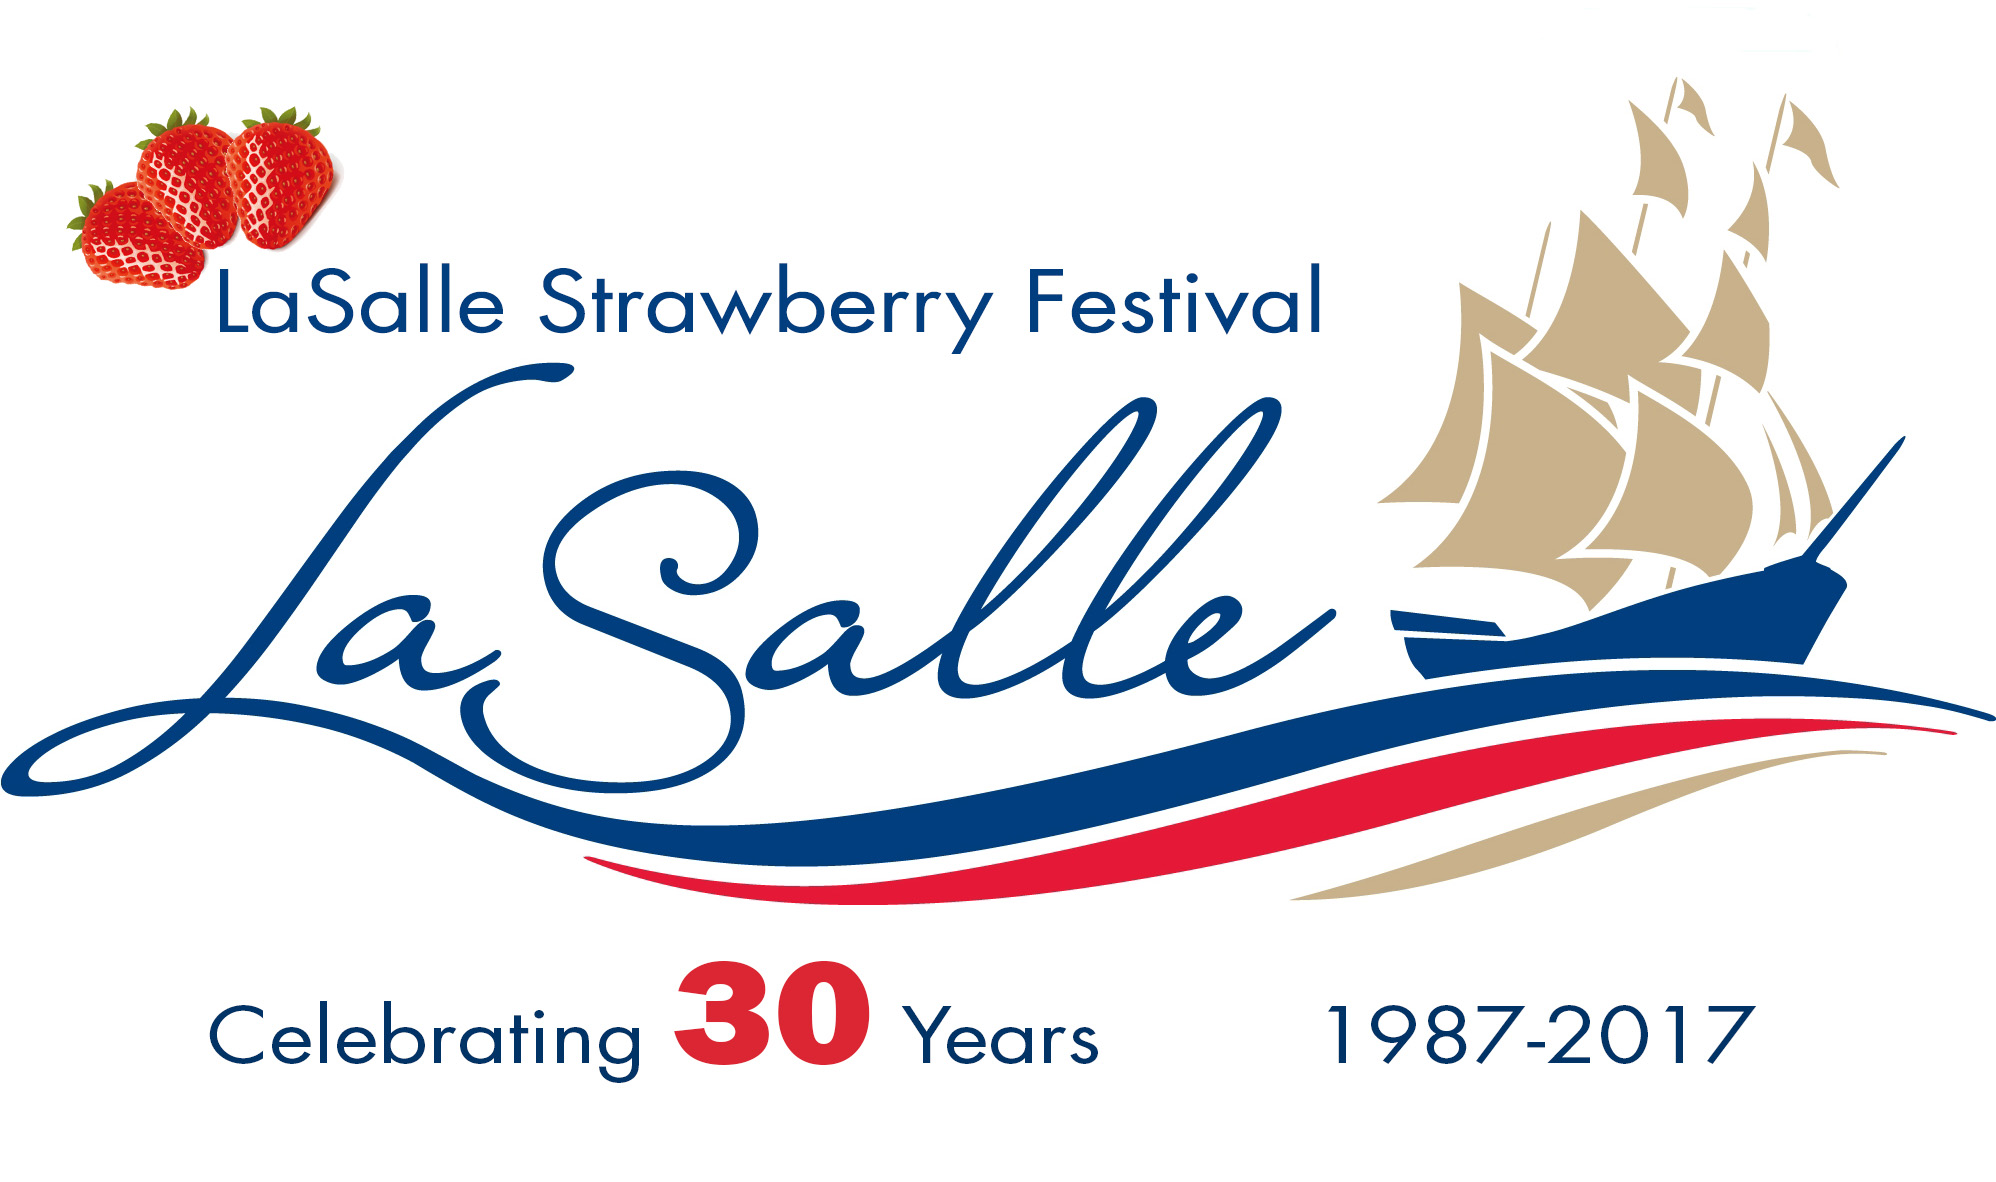 LaSalle Strawberry Festival Logo